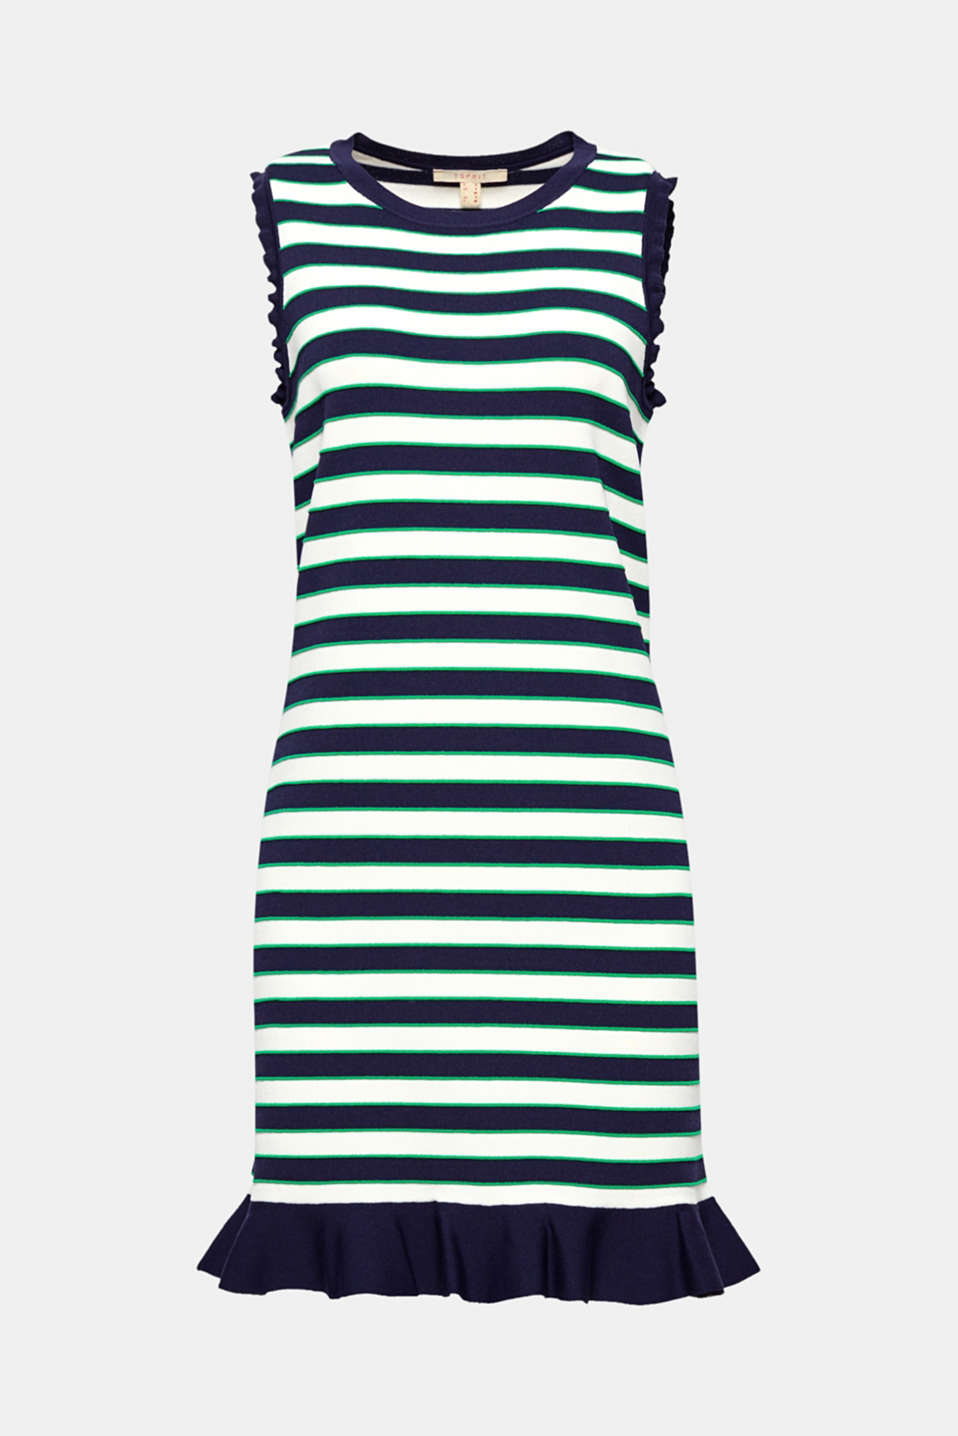 Sporty textured stripes and pretty flounces on the armholes and hem give this firm fine knit dress an exciting look!